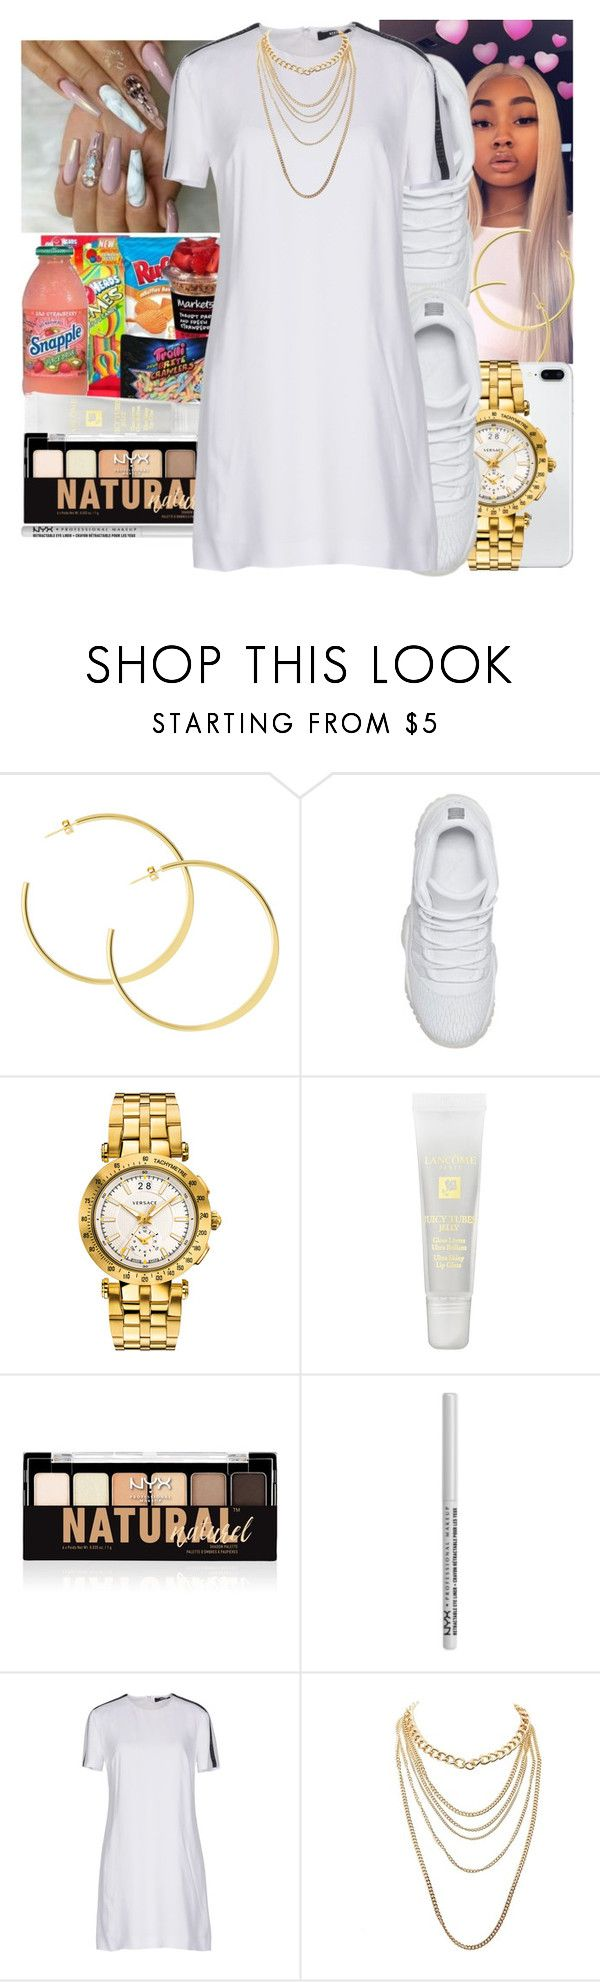 """MEDICINE X QUEEN"" by littydee ❤ liked on Polyvore featuring Versace, Lancôme, NYX, Versus and Charlotte Russe"